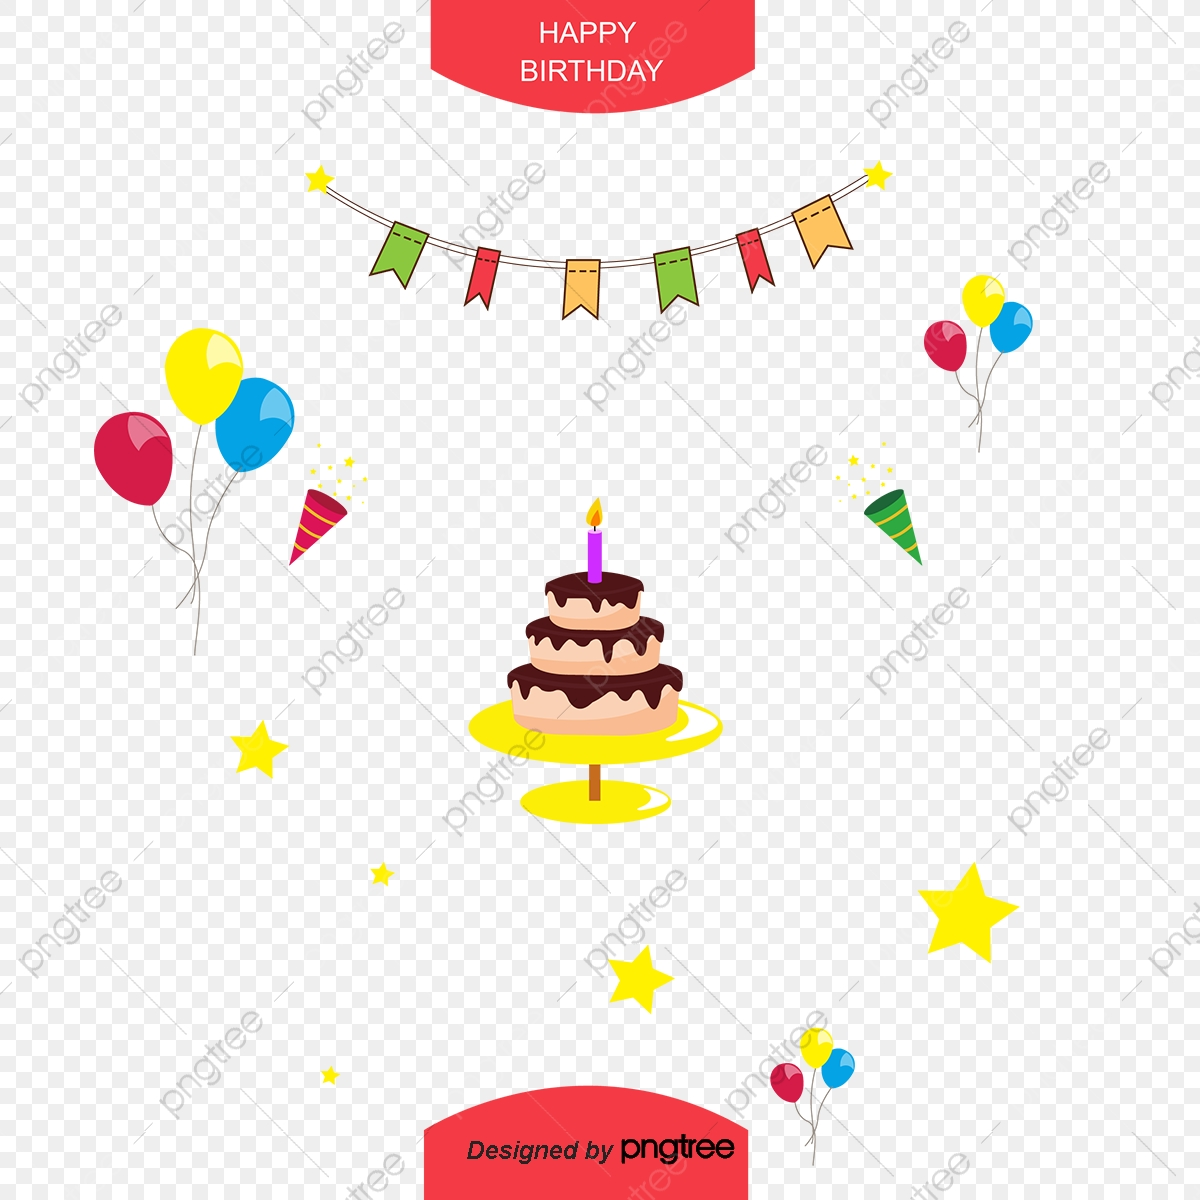 Birthday Clipart Download Free Transparent Png Format Clipart Images On Pngtree